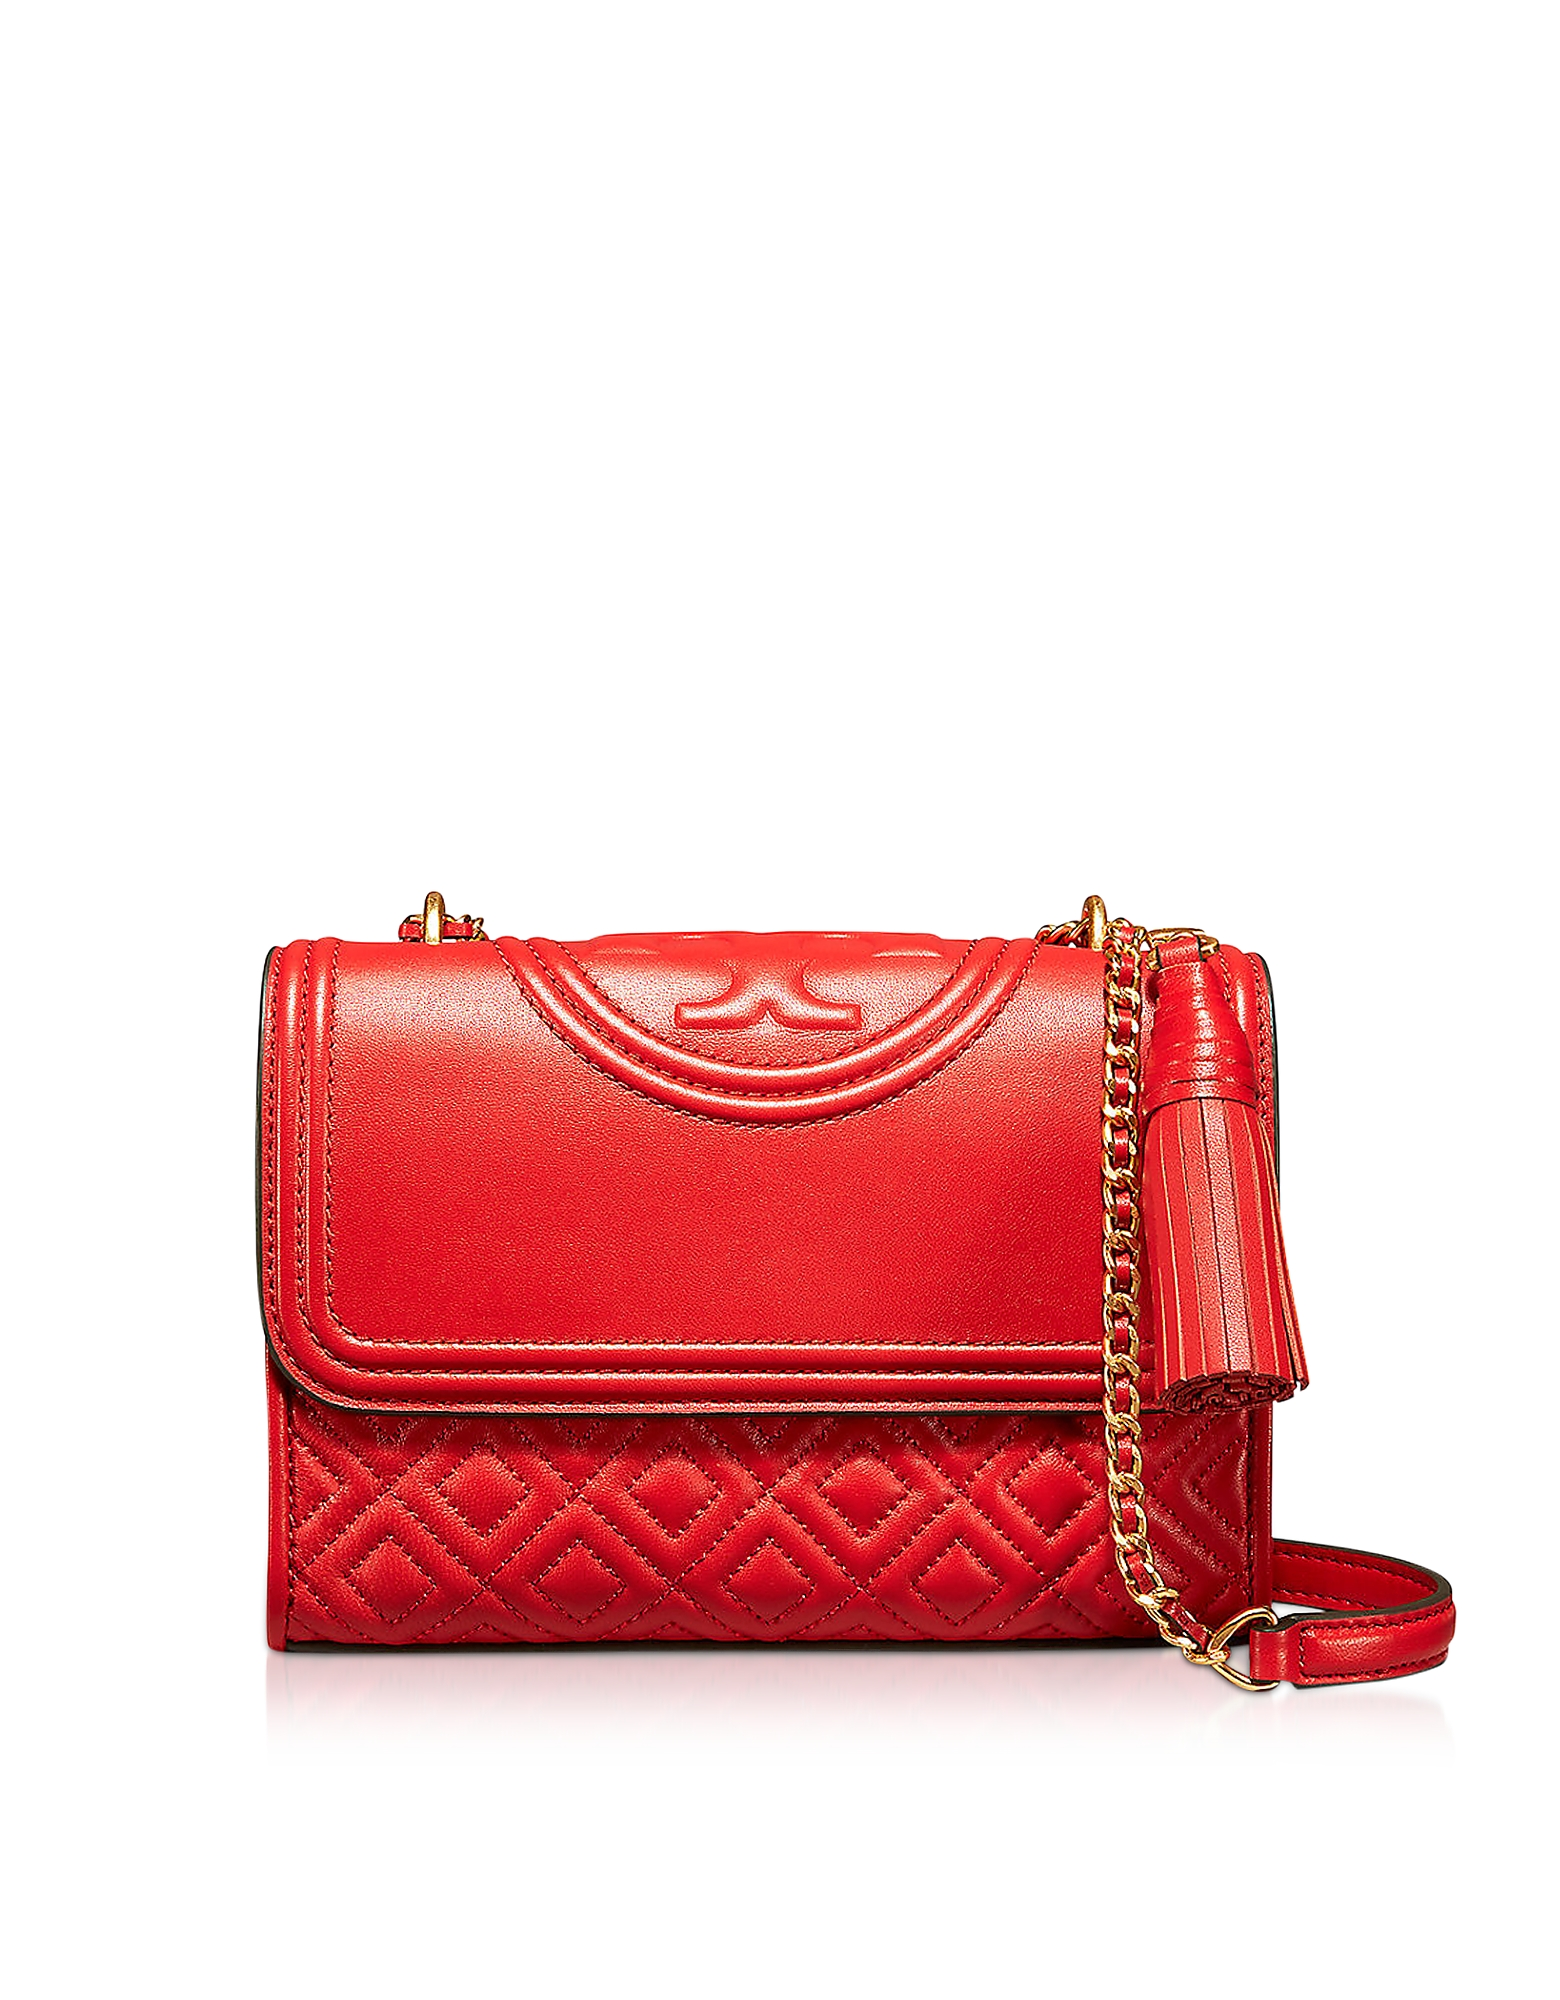 Tory Burch Handbags, Fleming Exotic Red Leather Small Convertible Shoulder Bag